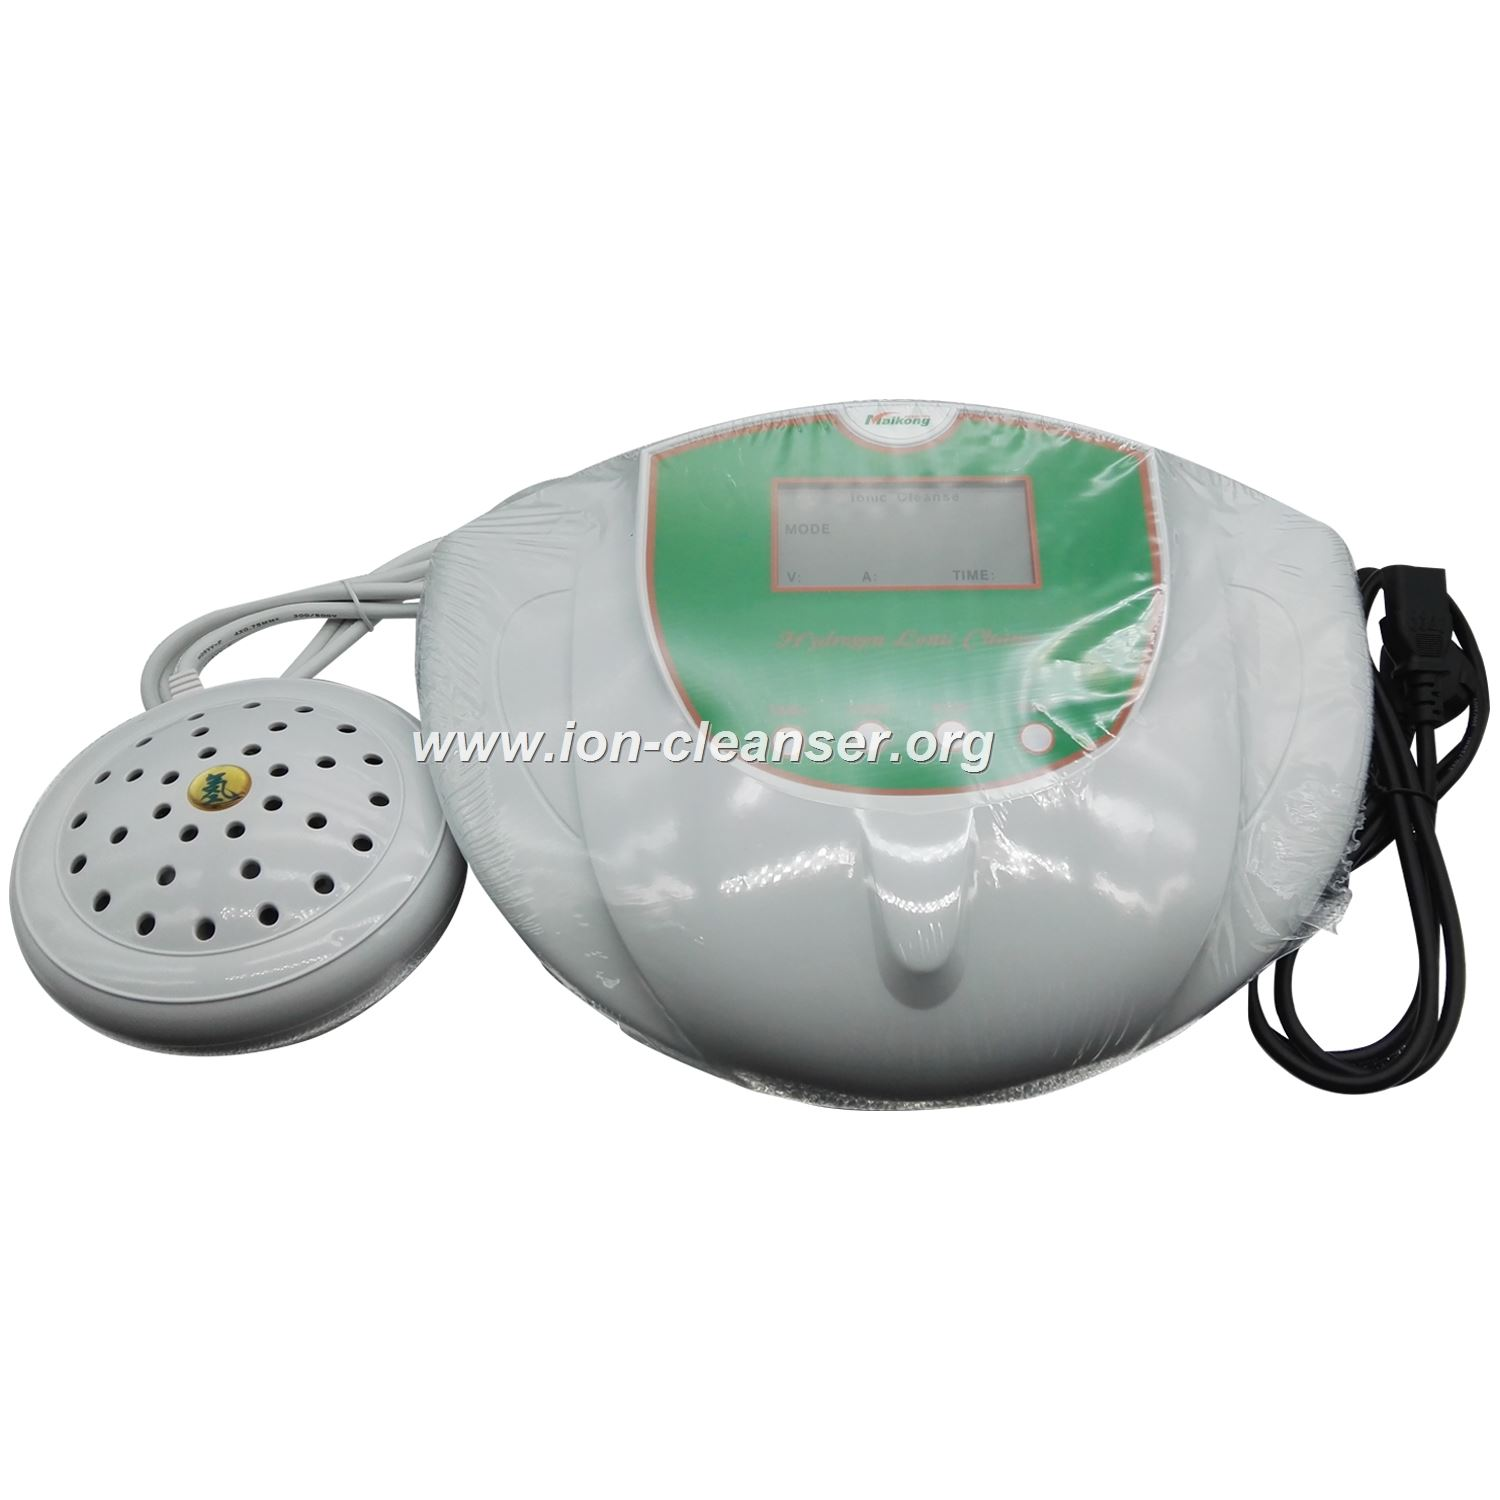 Cell spa detox machine best Machine for Foot Spa